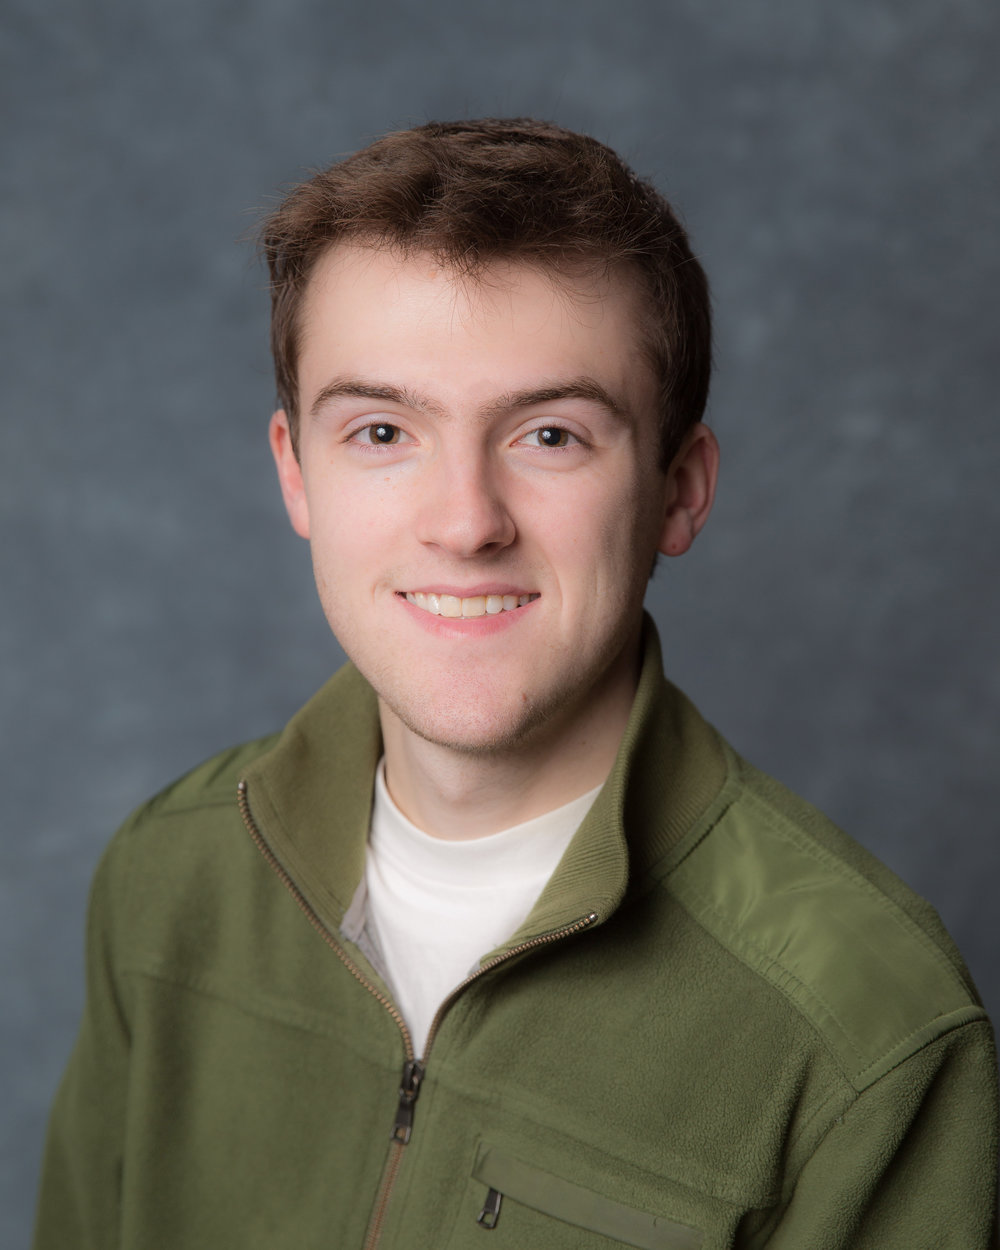 Nathan Trombley - MS, GeographyCurrent Employment: Intern, Oak Ridge National LaboratoryResearch: International migration and remittances